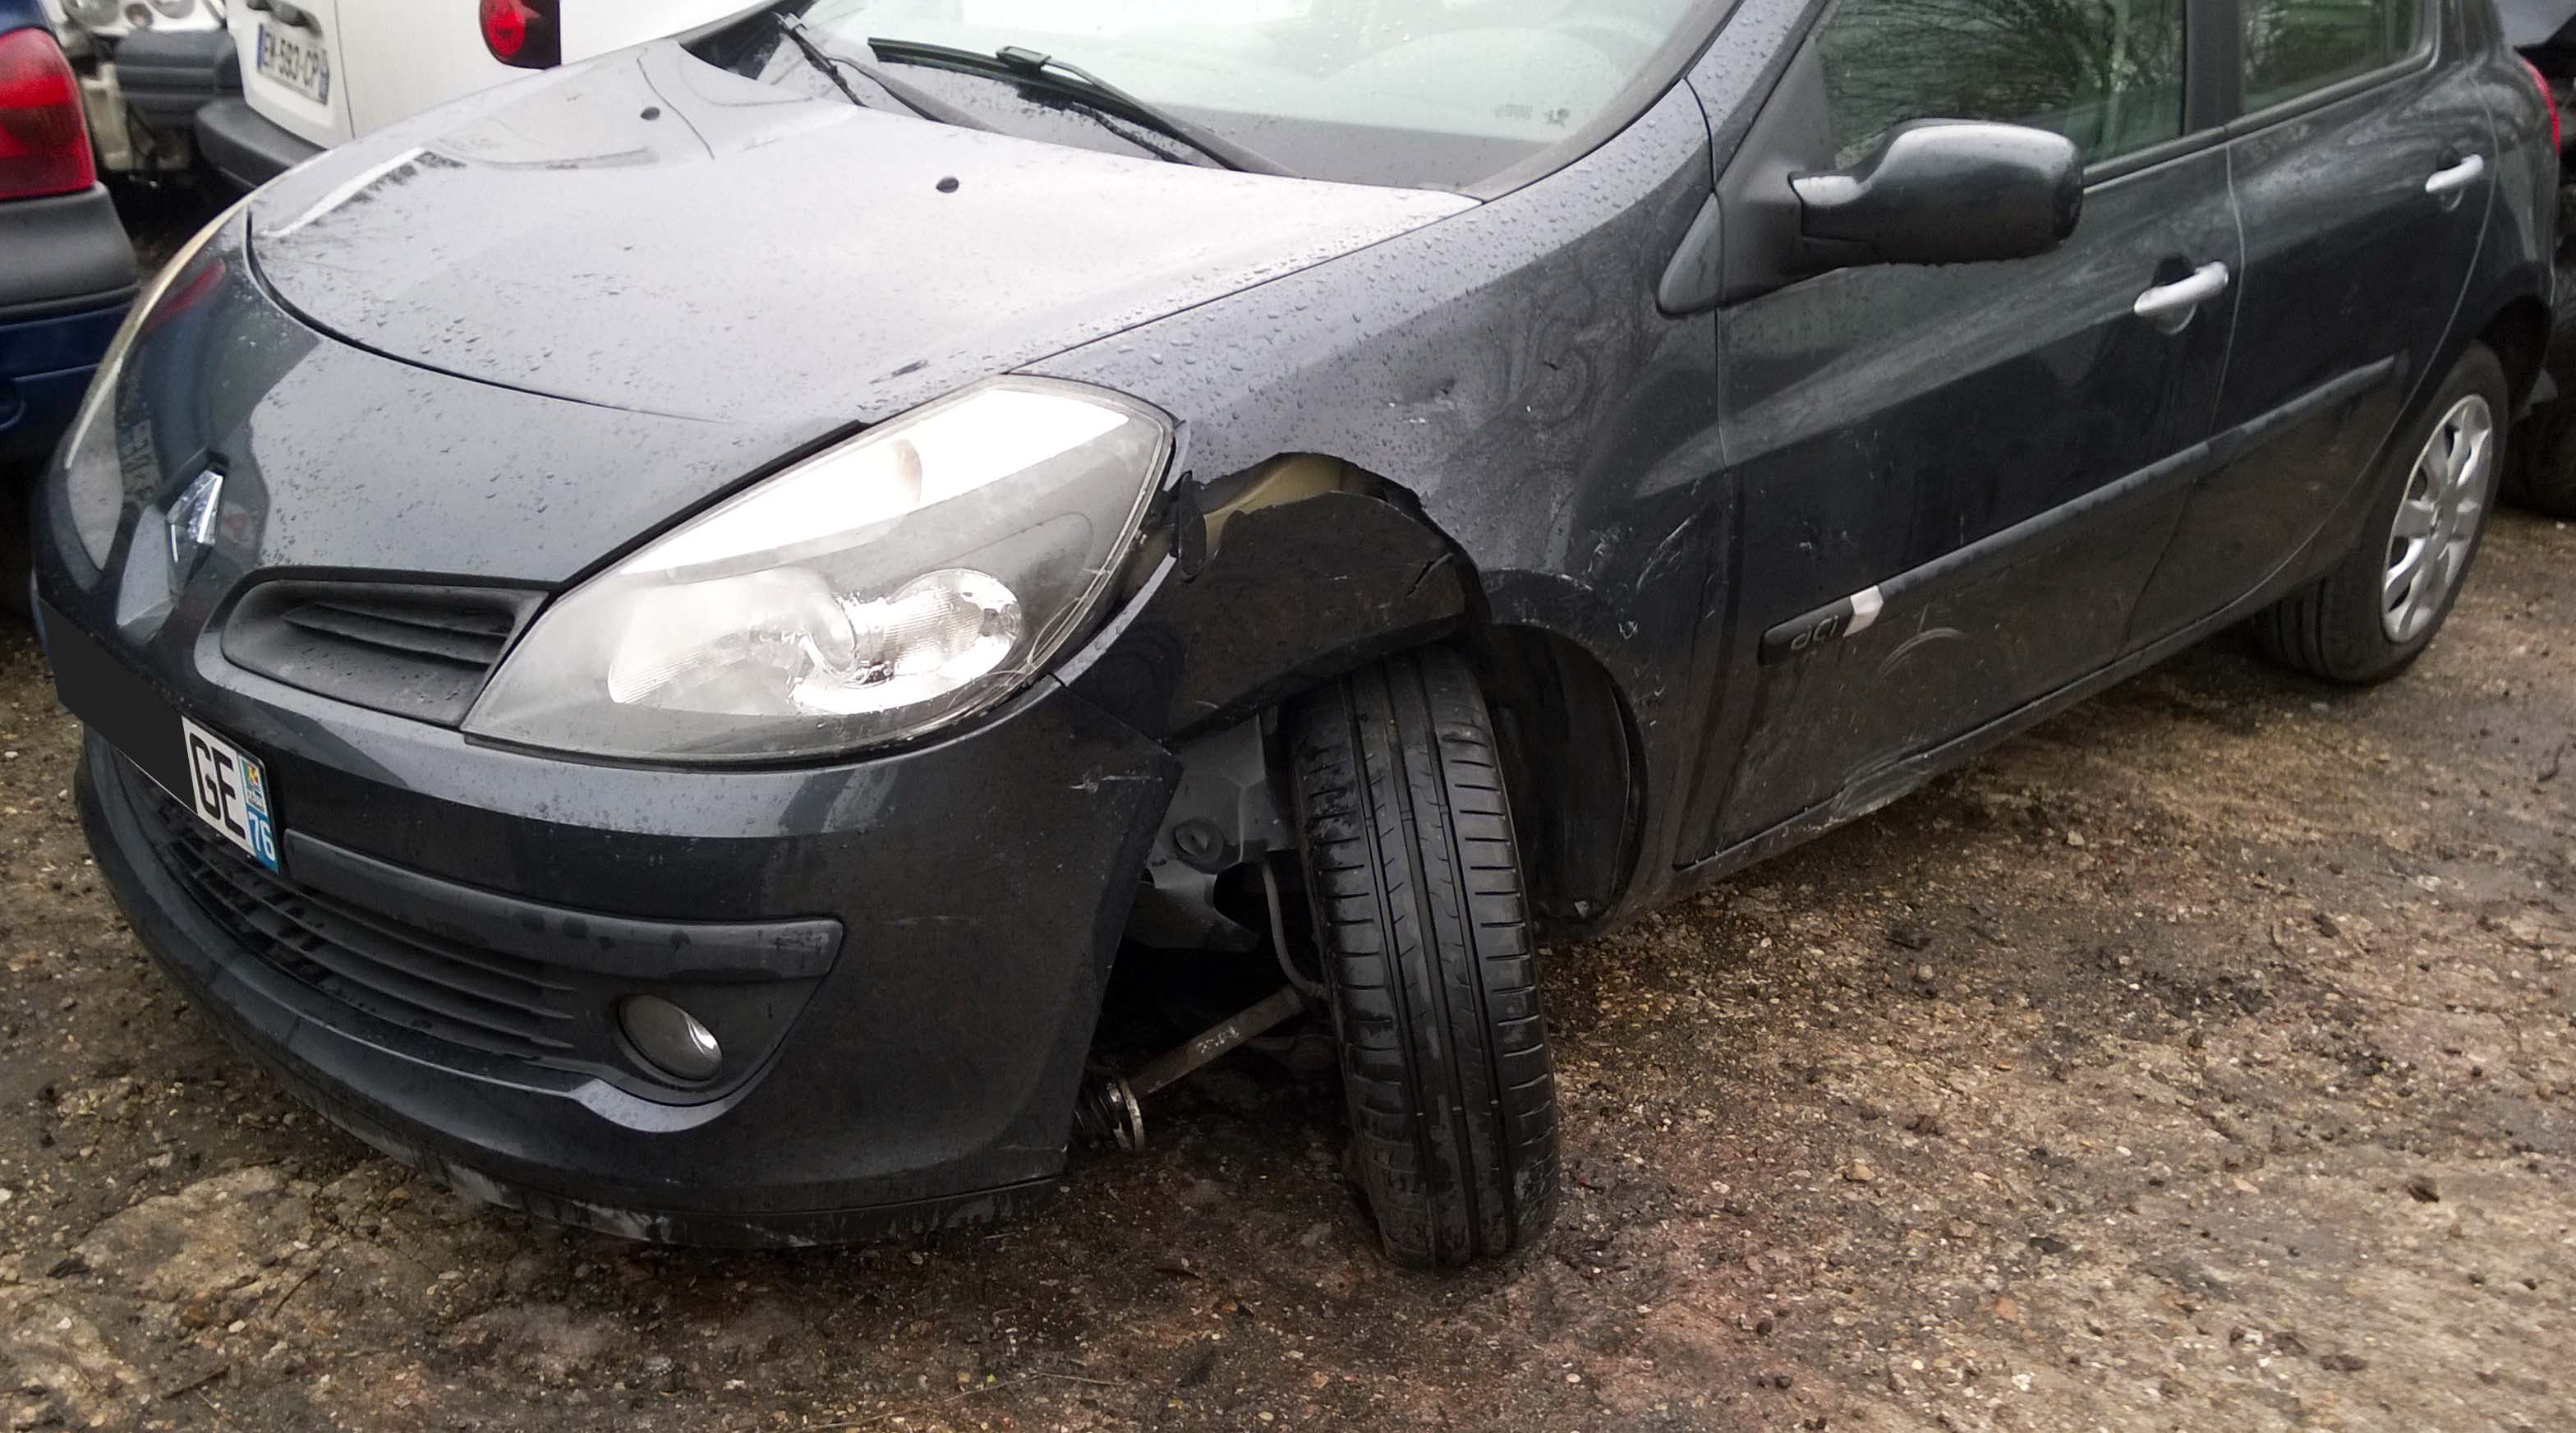 Renault clio 1.5 dci 85 accidentée